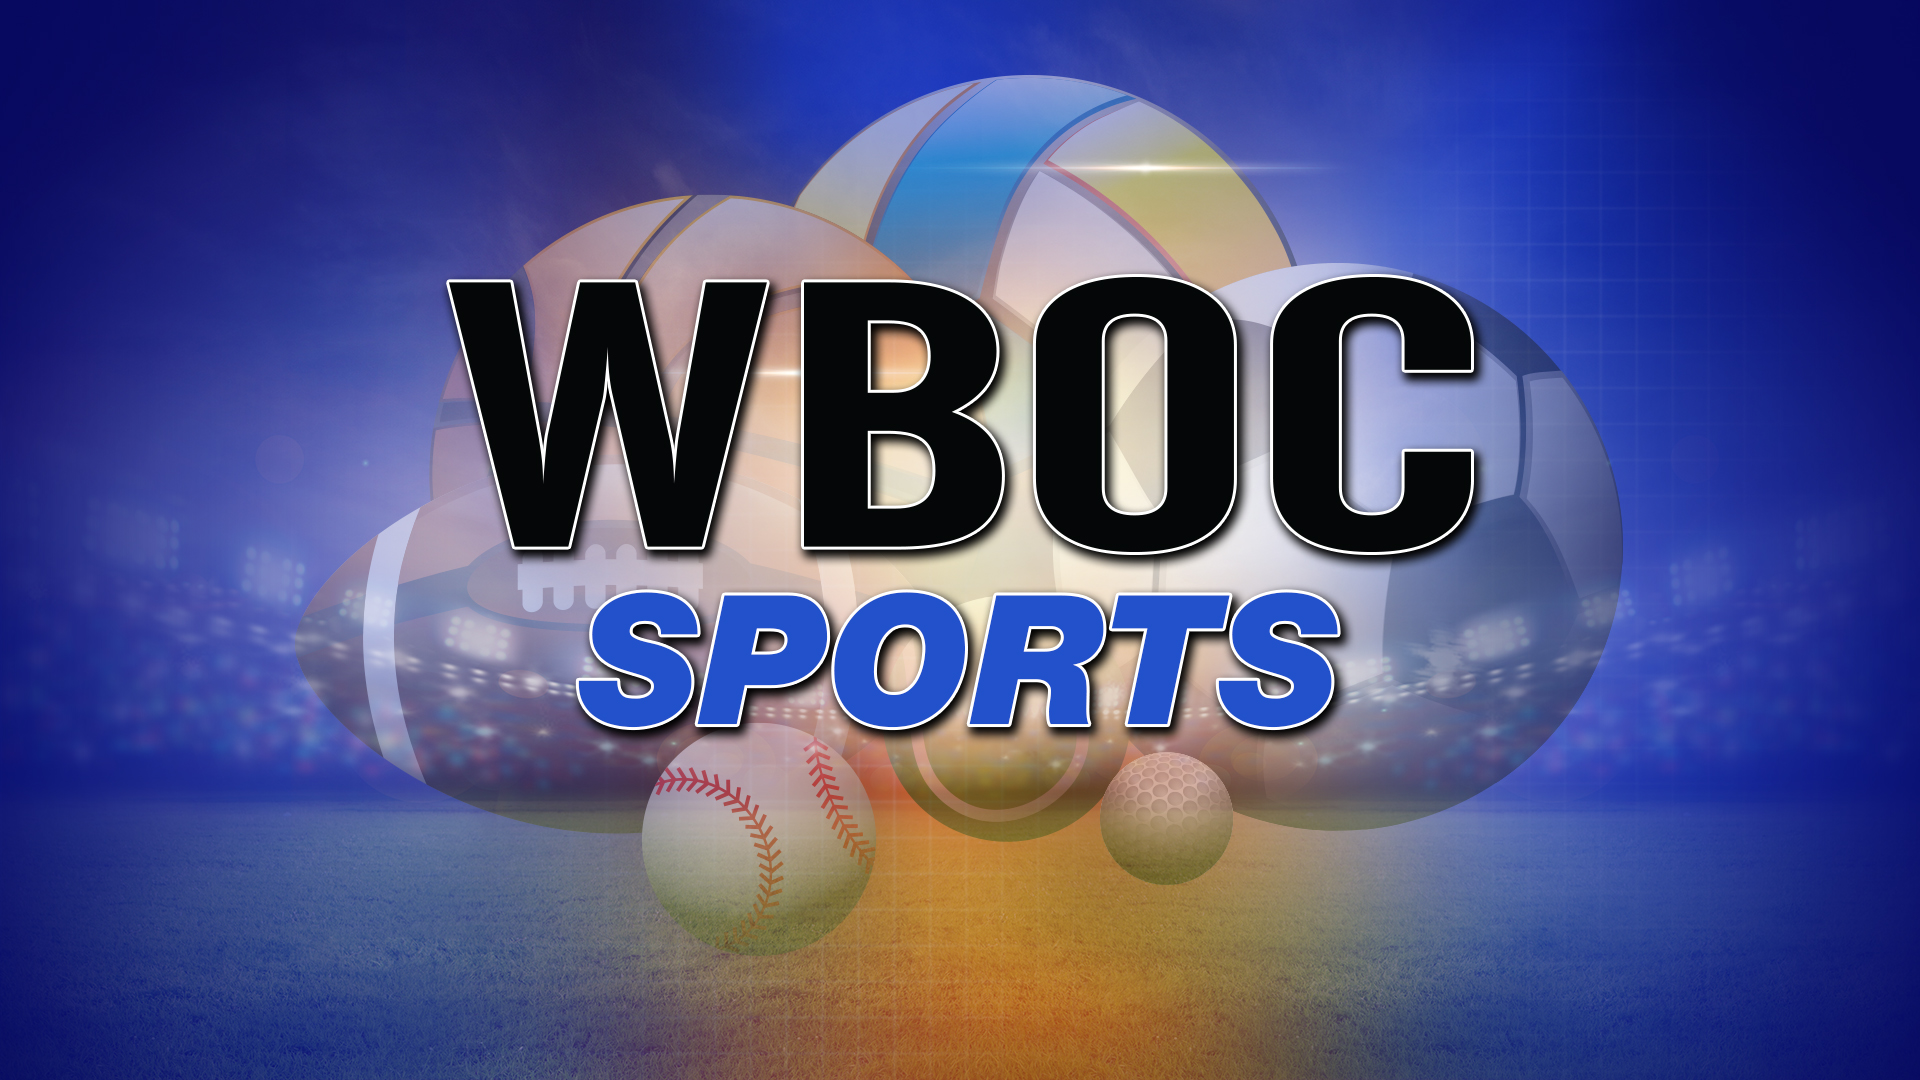 WBOC Sports Report: Tuesday, October 6, 2015